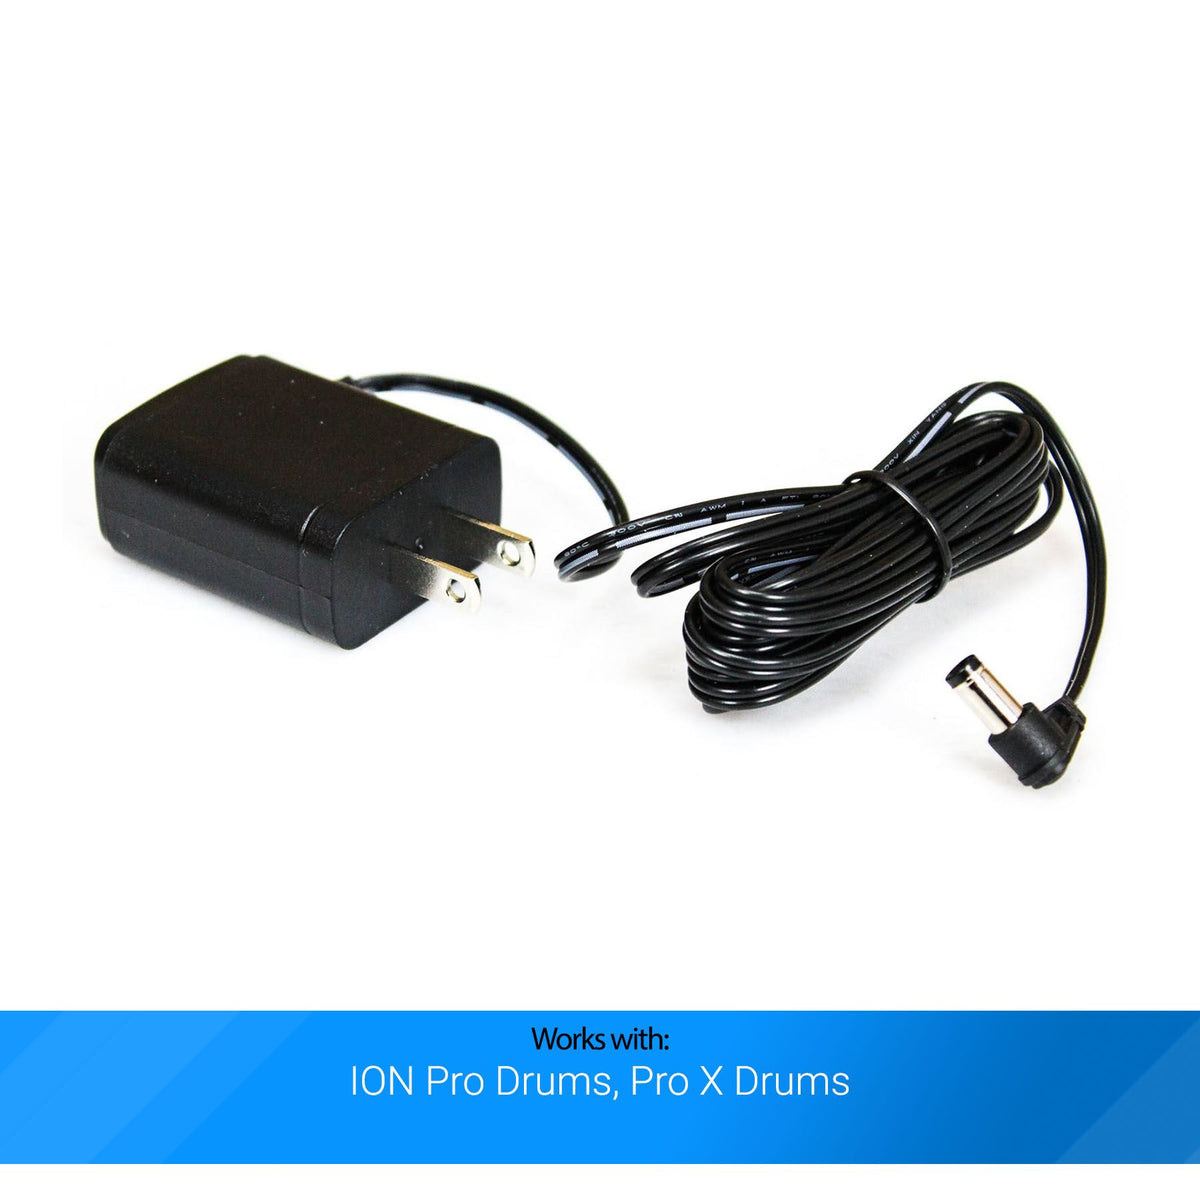 ION Pro Drums / Pro X Drums Power Adapter